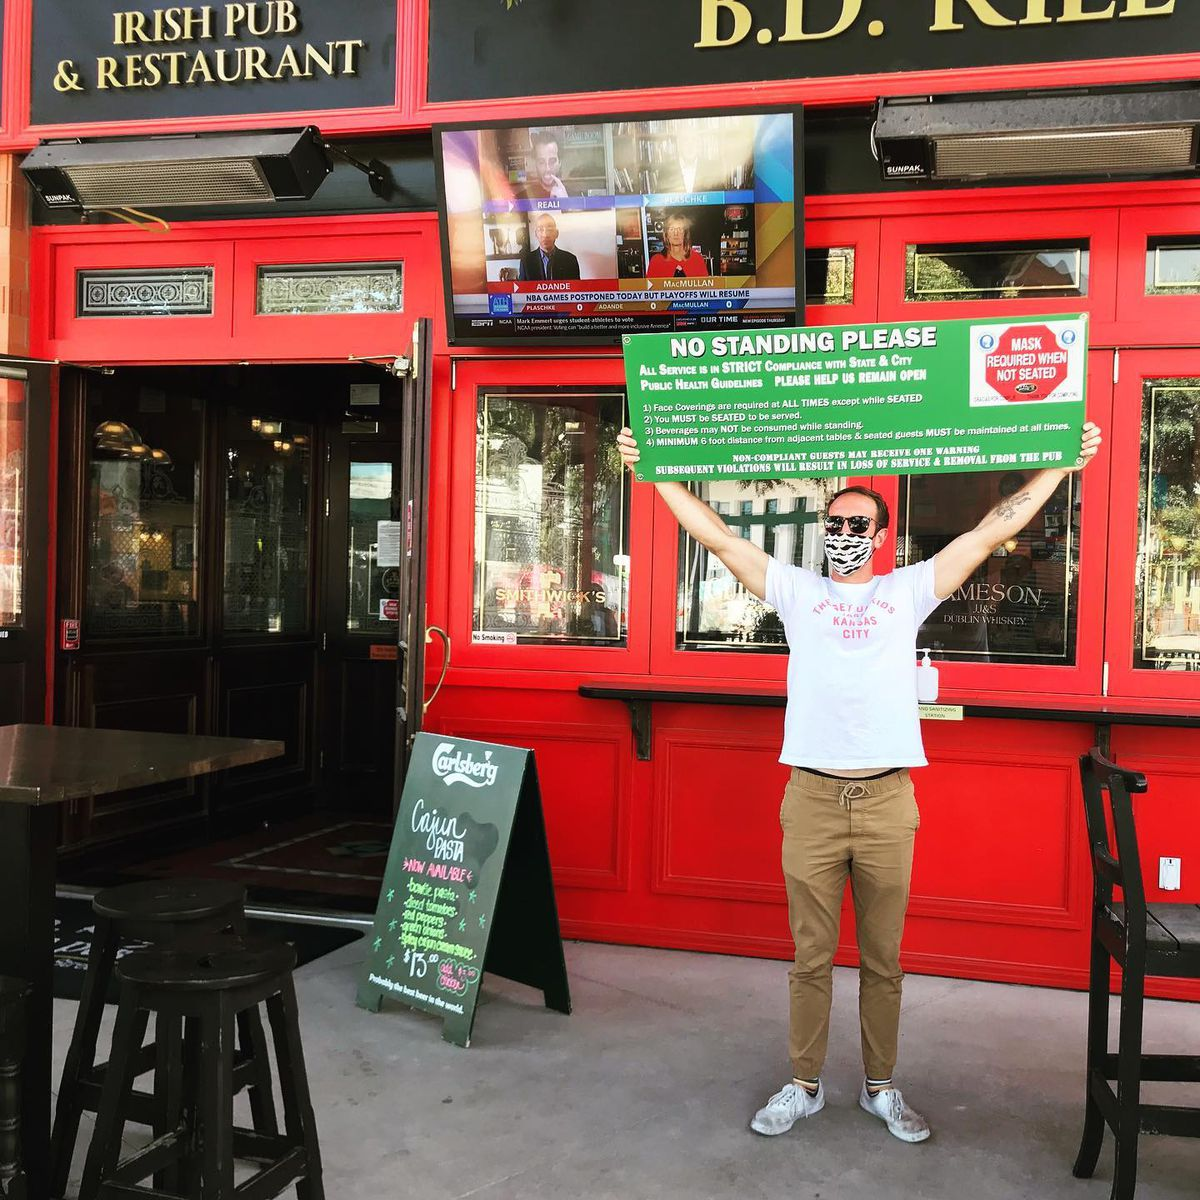 A B.D. Riley's employee holding up the bar's no standing rule signage